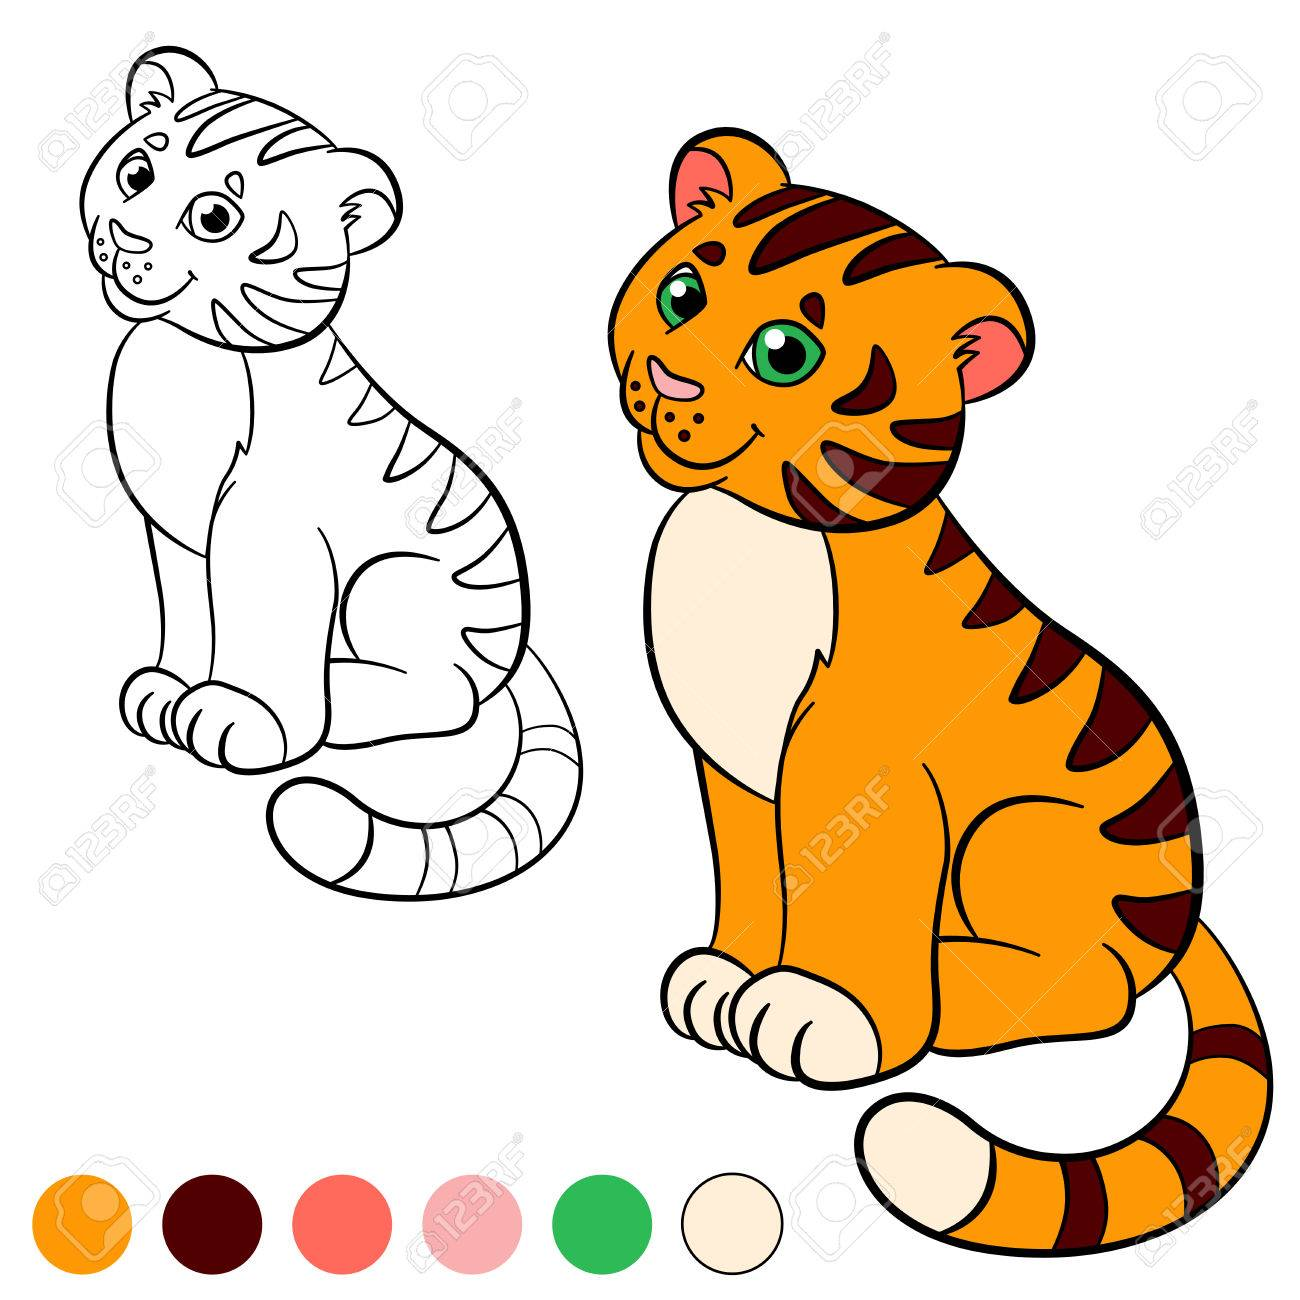 Coloring Page Color Me Tiger Little Cute Baby Sits And Smiles